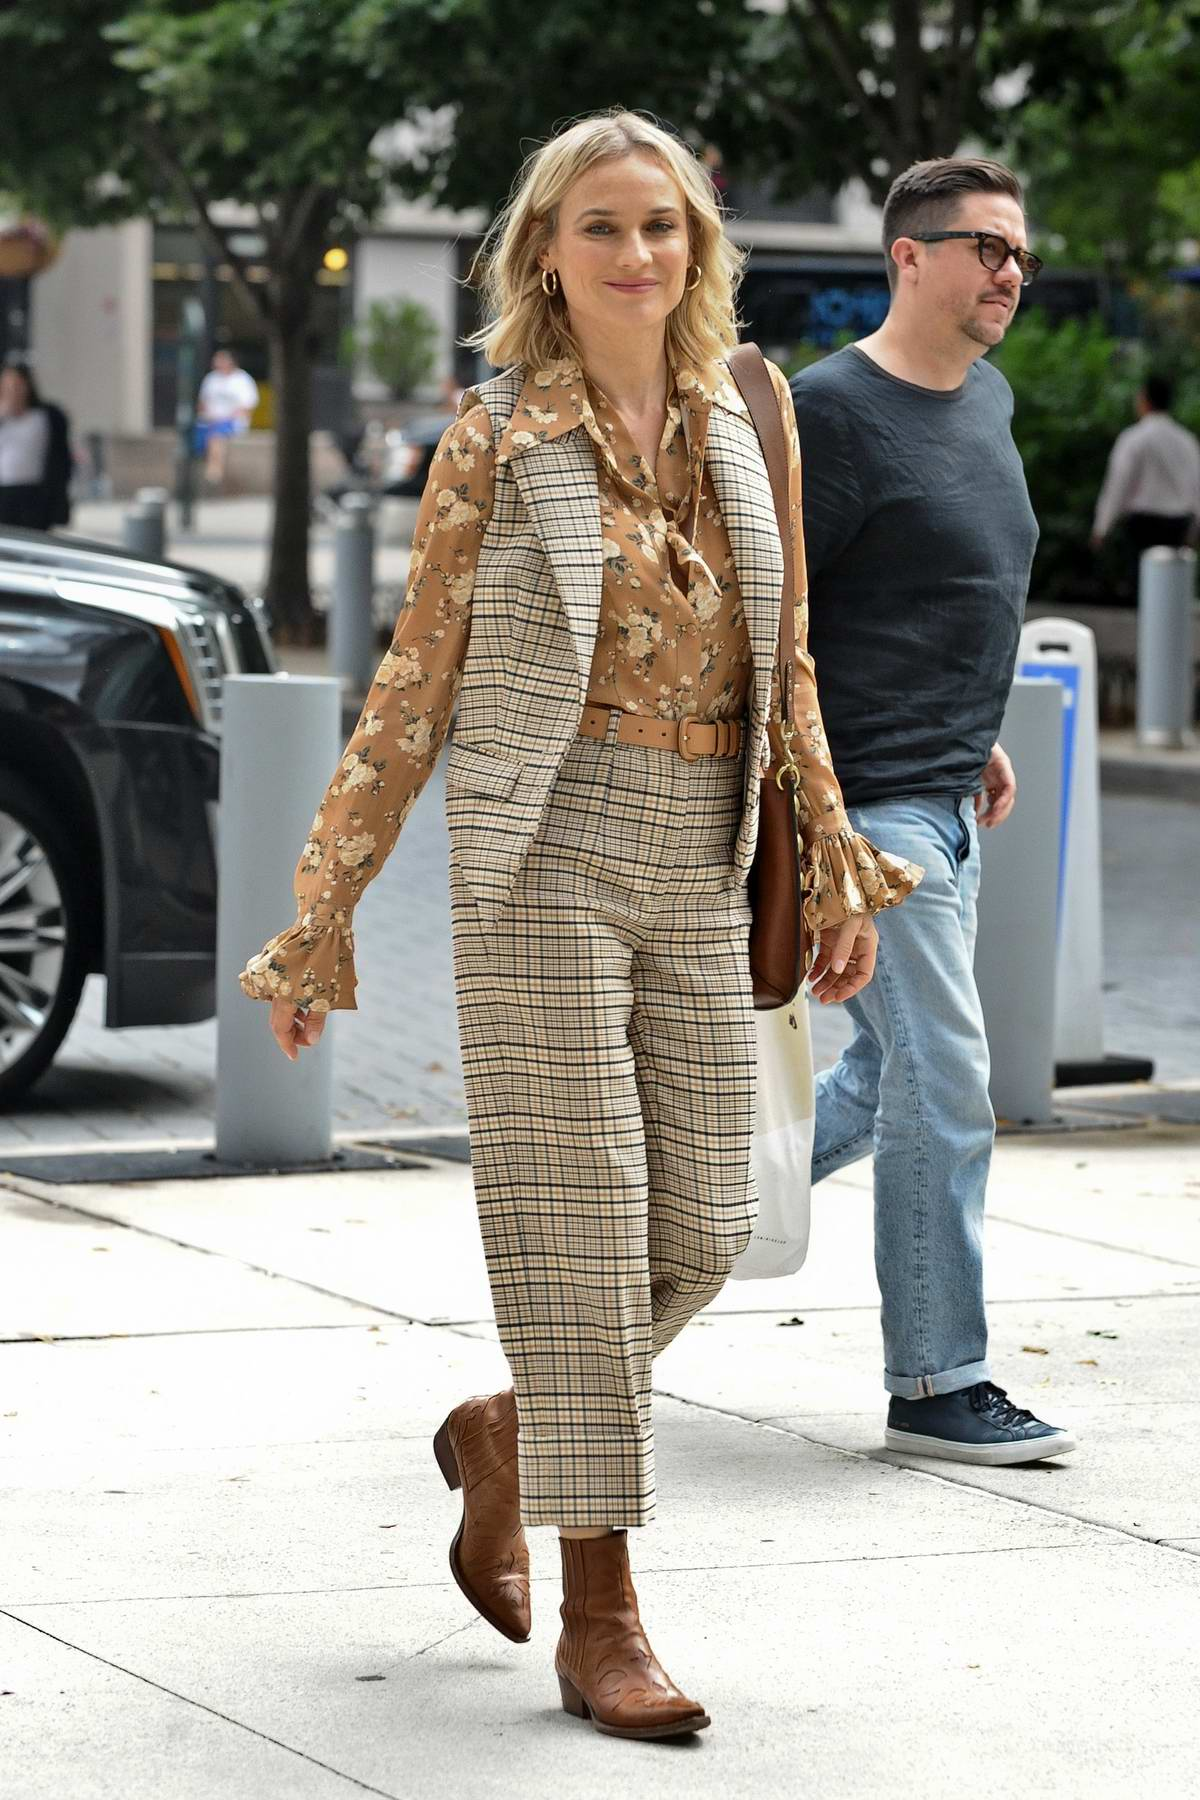 Diane Kruger sports a retro look while visiting Build Series in New York City